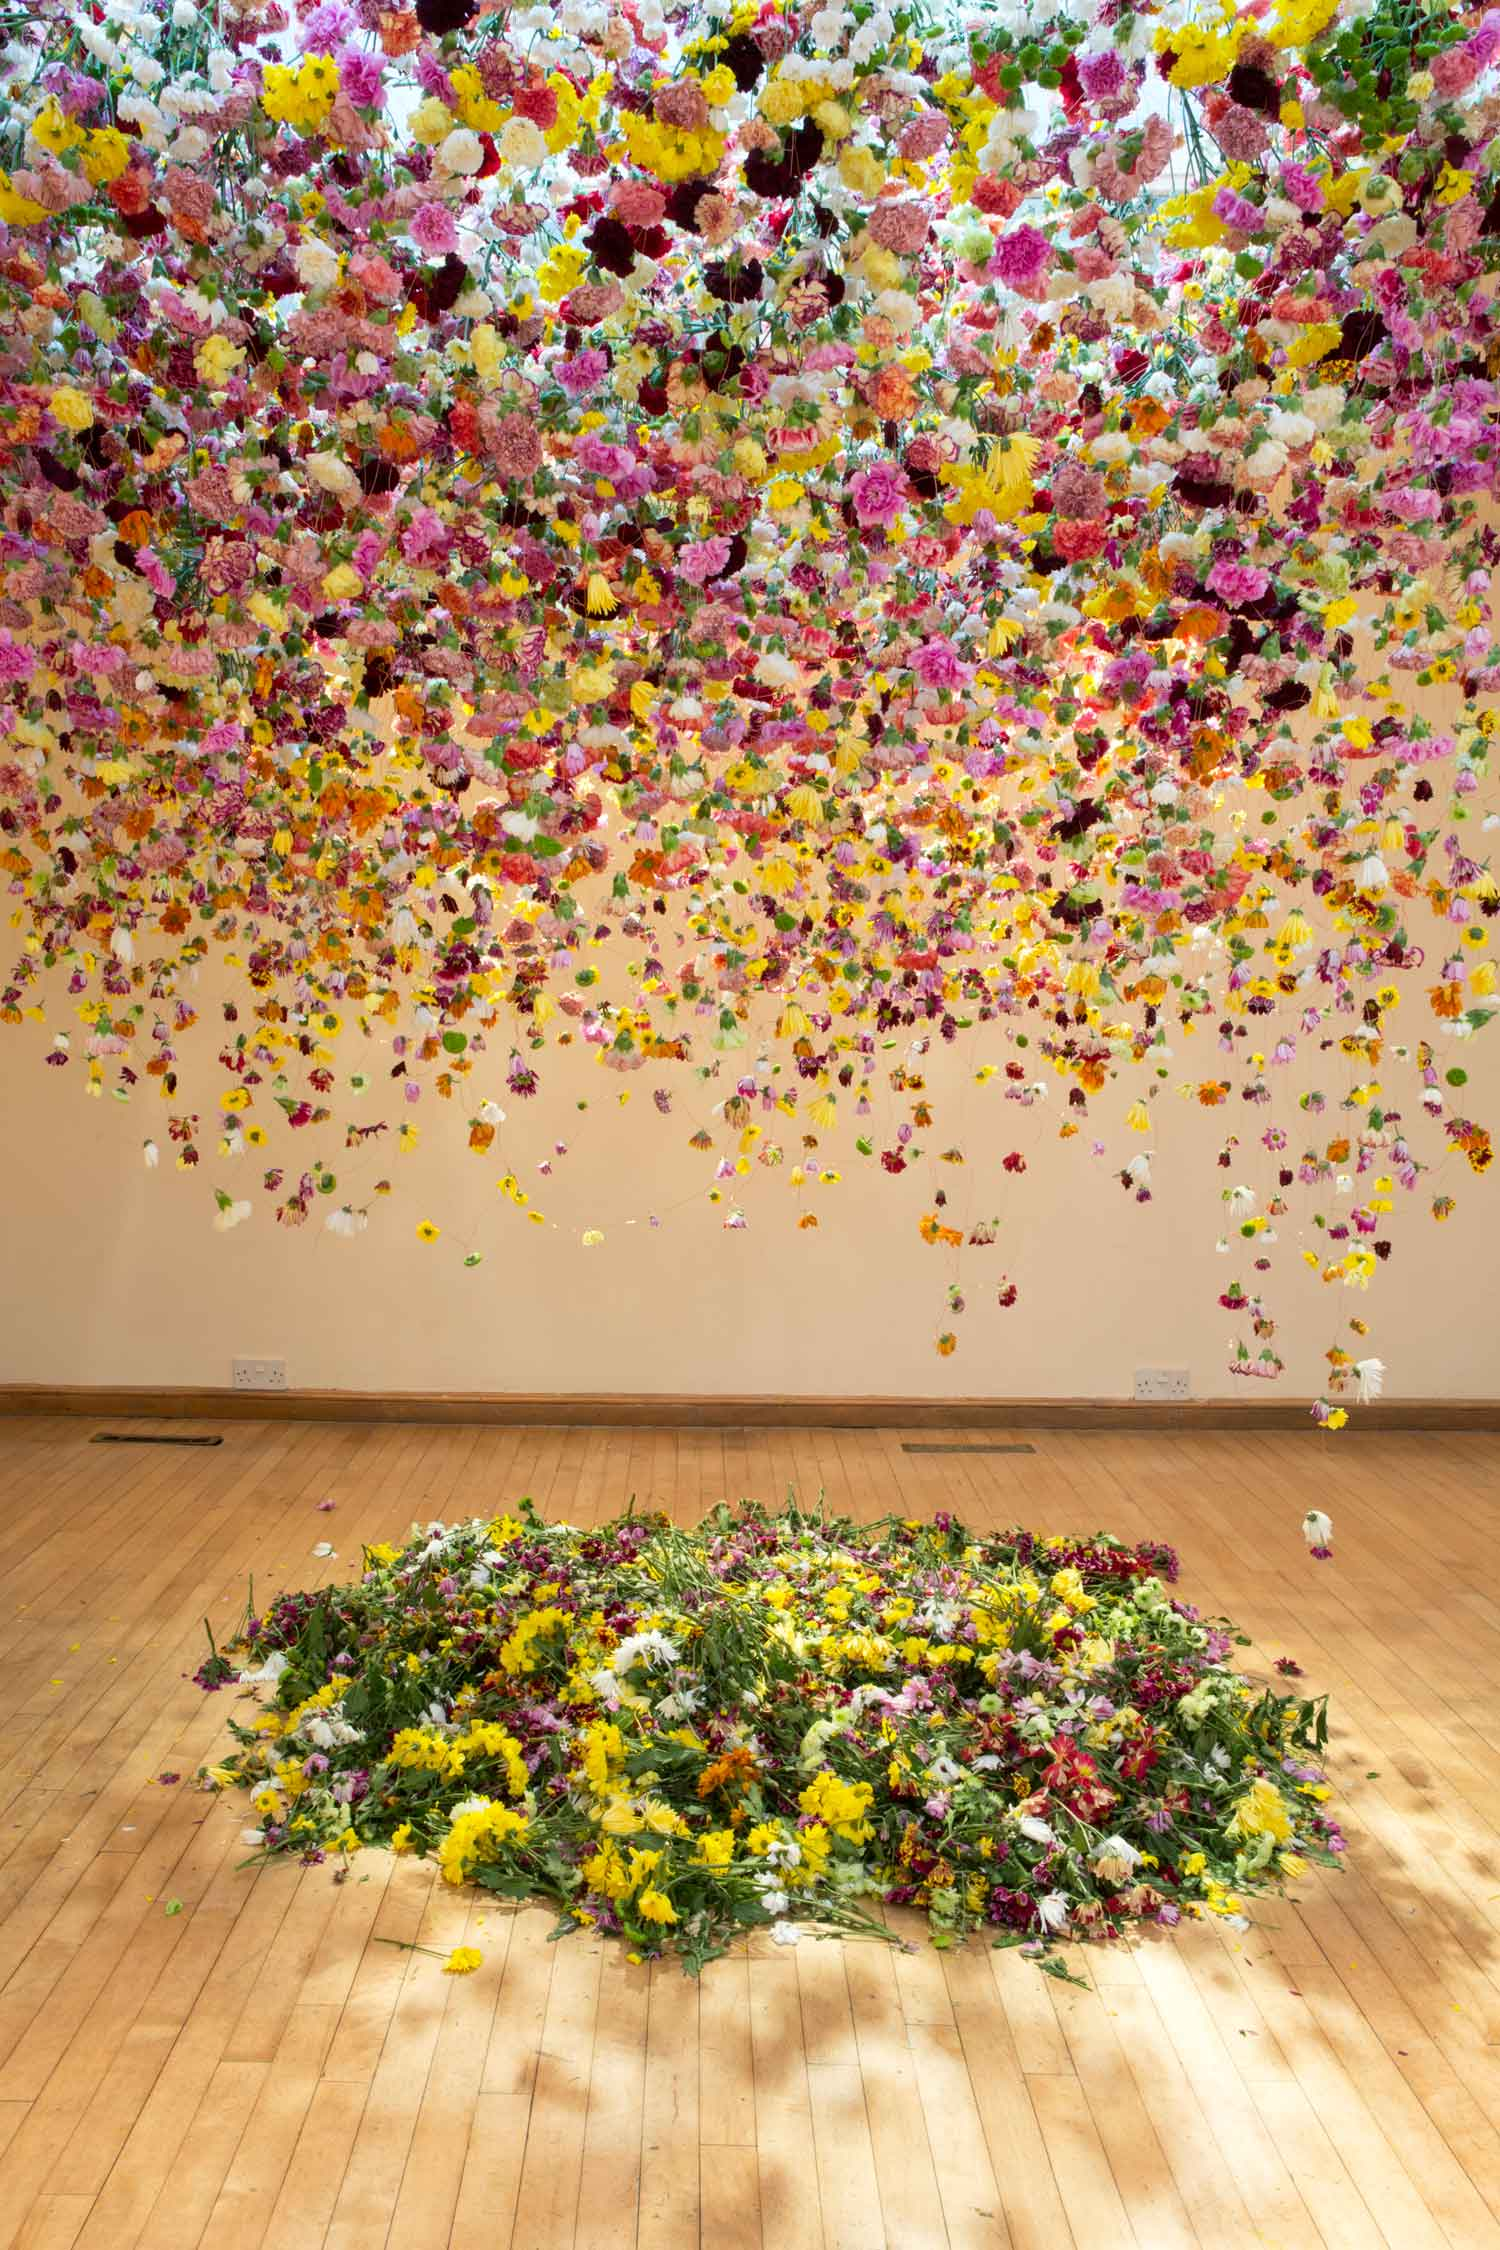 Floral Art by Rebecca Louise Law, The Hated Flower 2014 | Yellowtrace